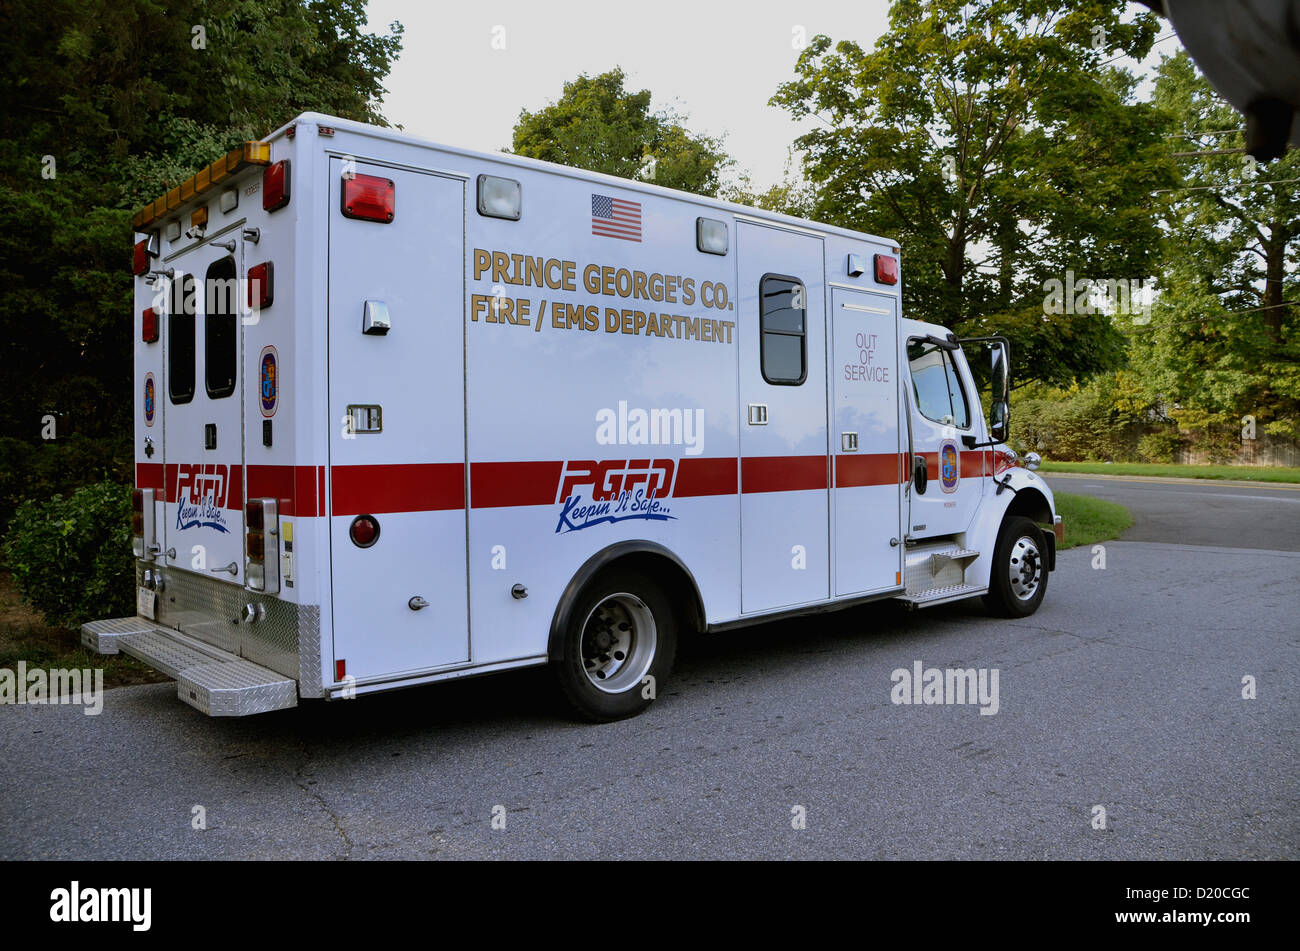 An ambulance from the Prince George's County Fire and Rescue Department - Stock Image